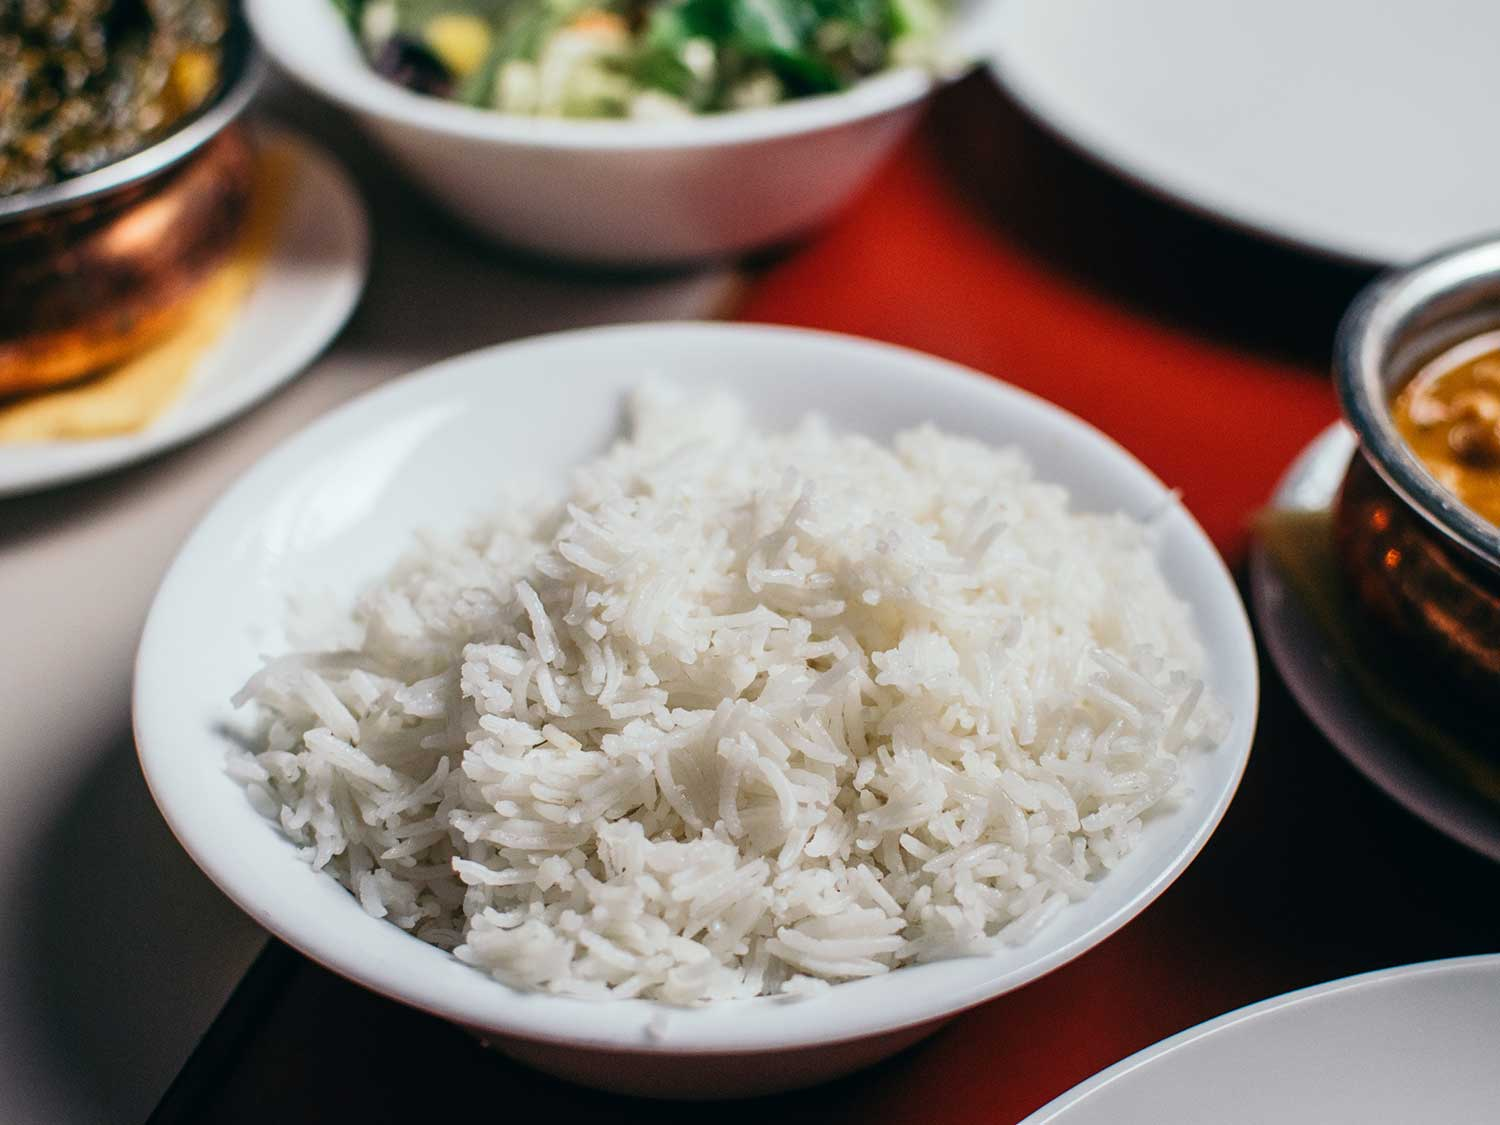 Cooked rice in bowl with other food.